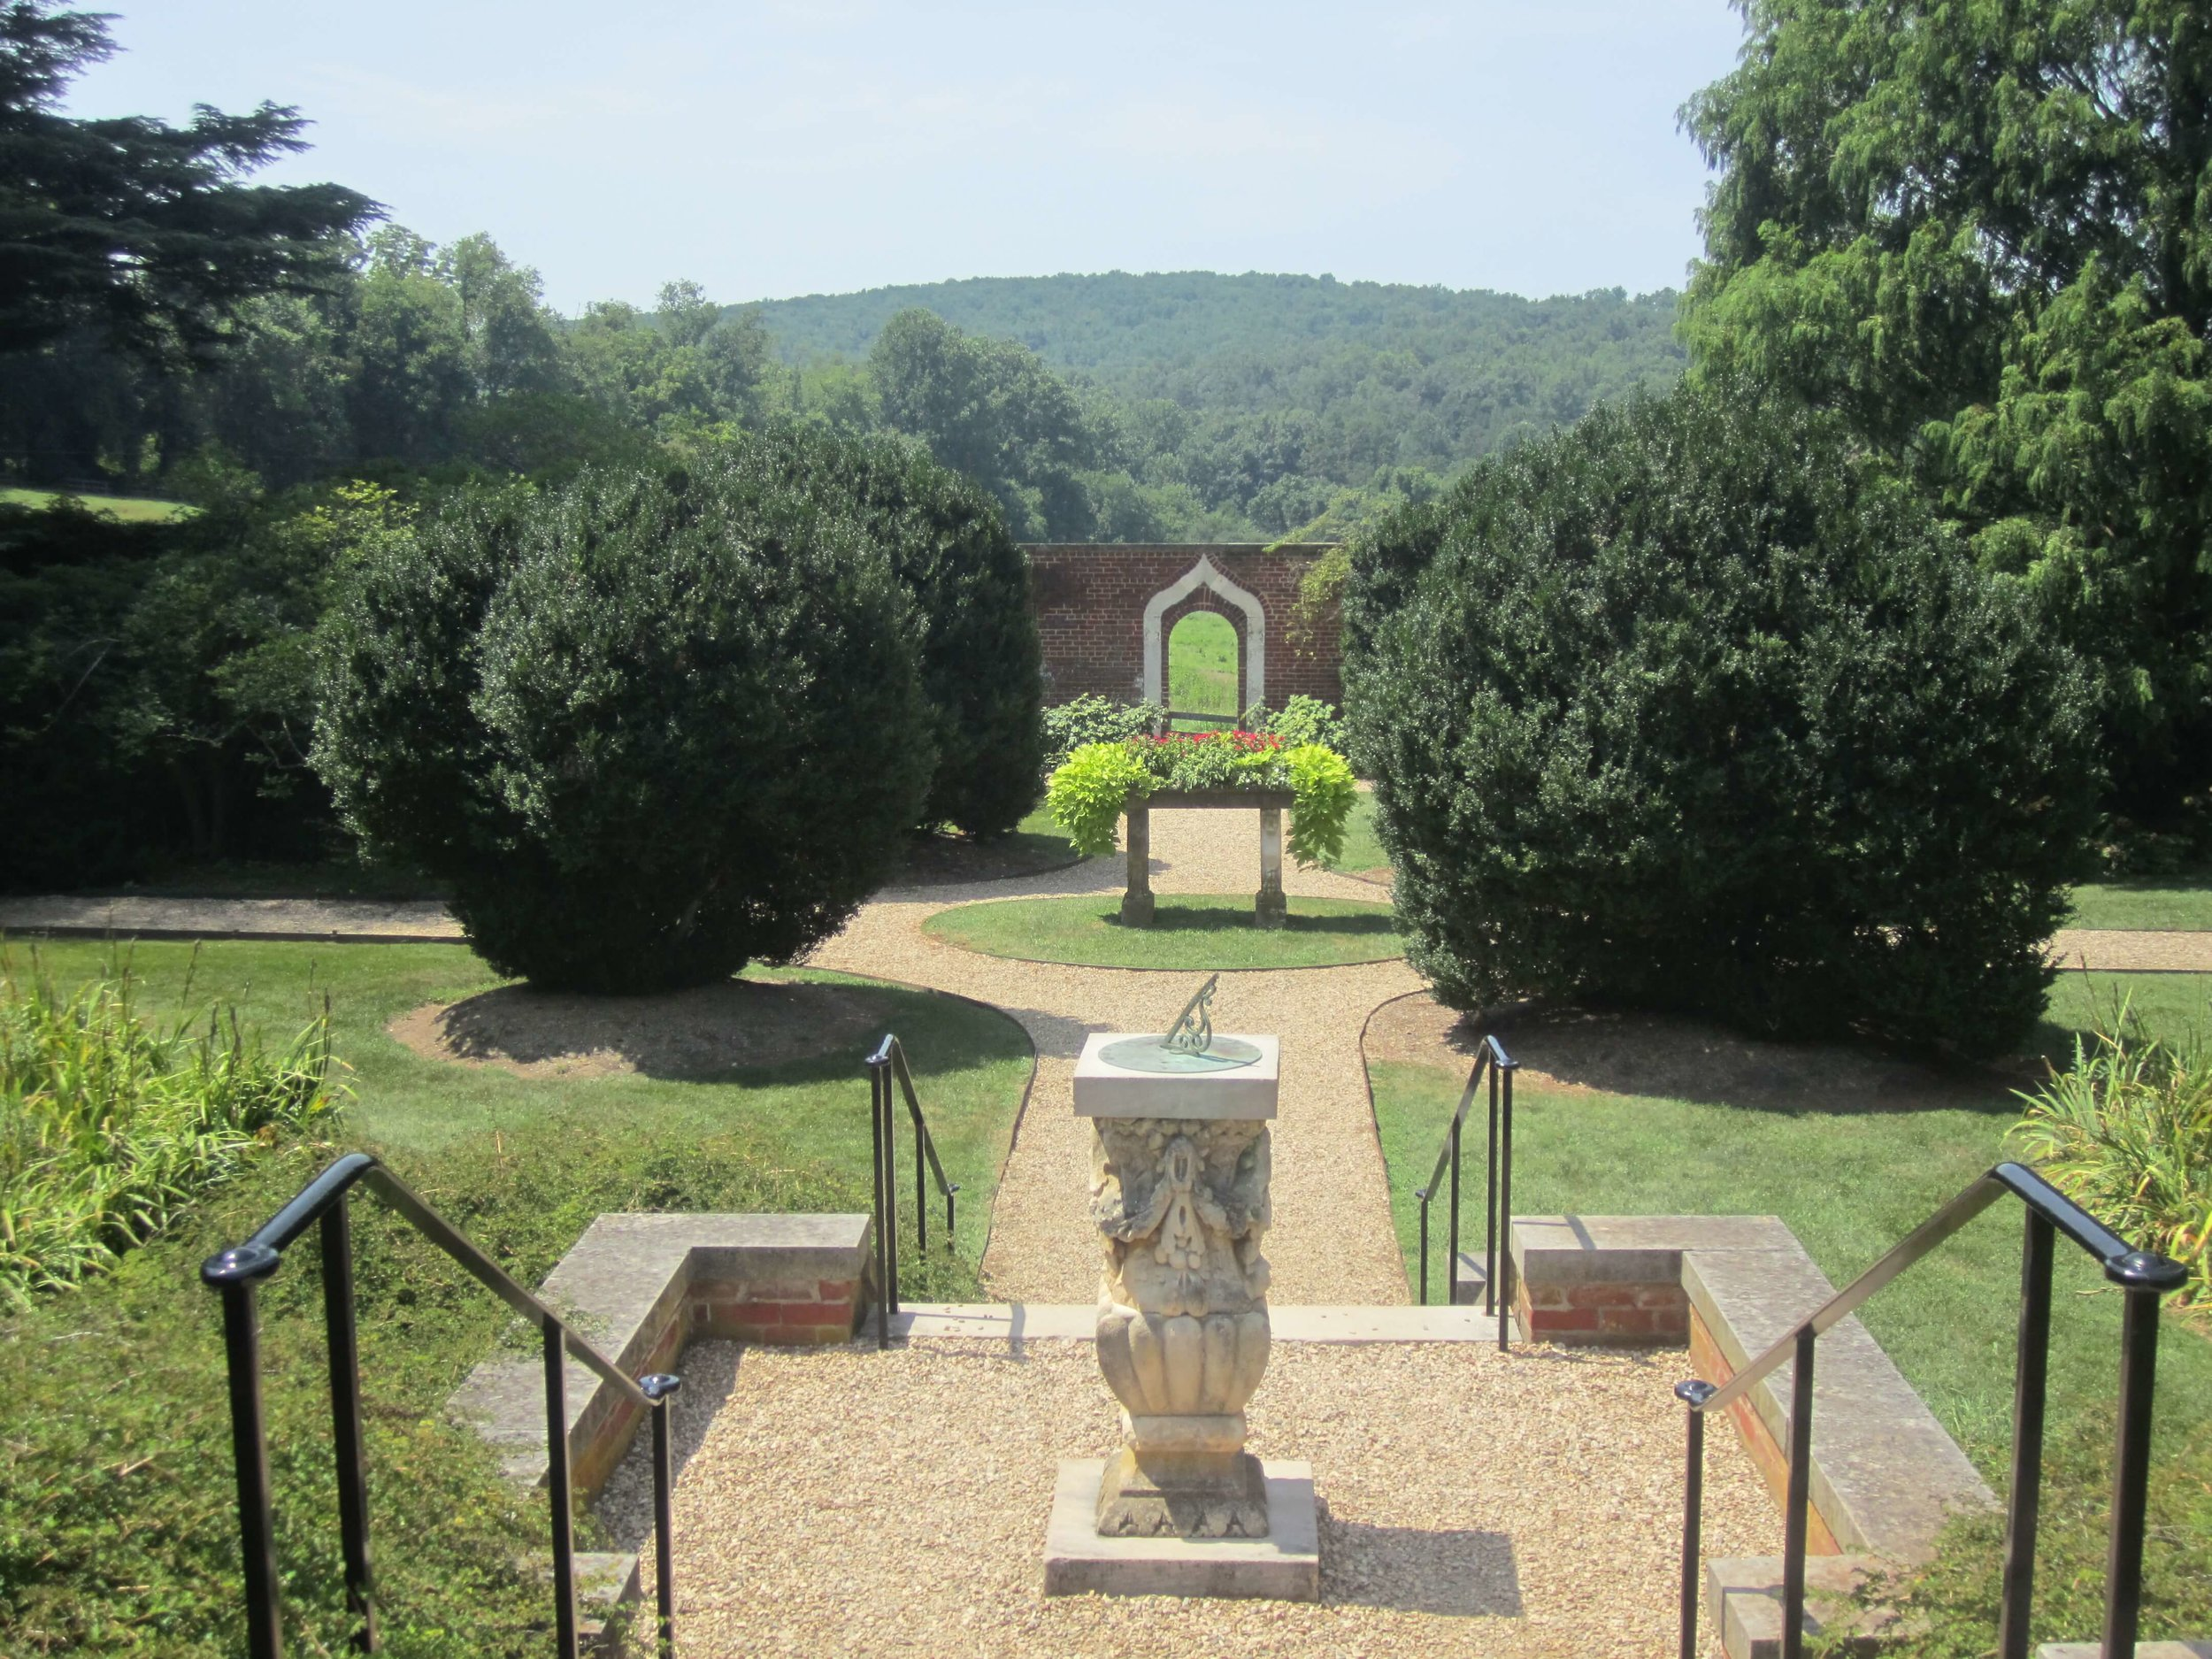 Photo ©Billy Hathorn, Entrance to the Gardens at Montpelier.